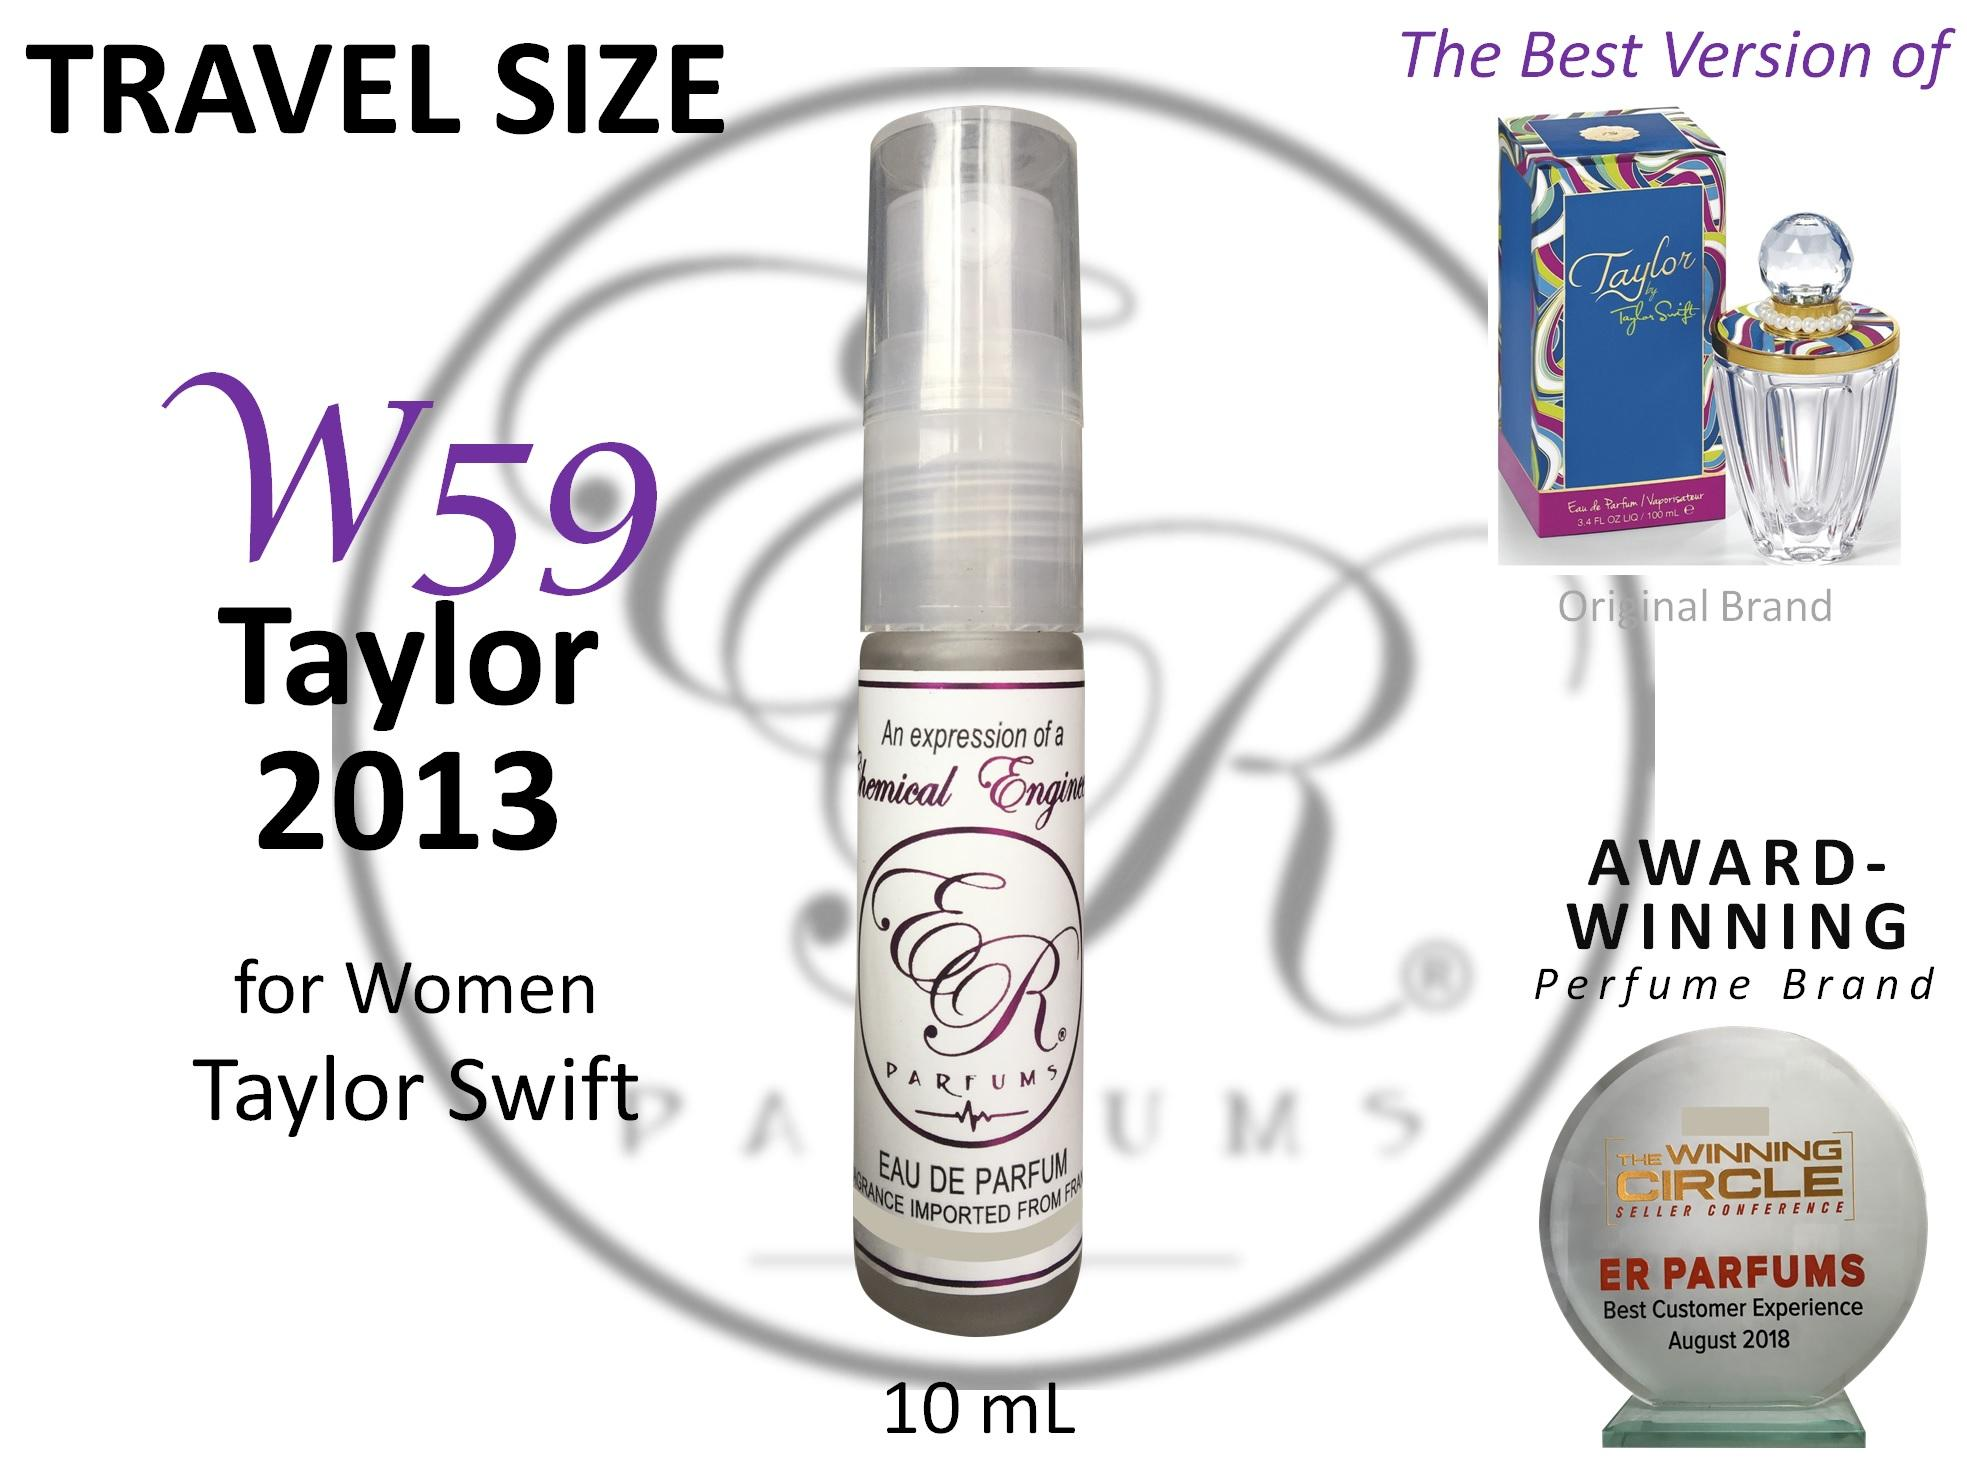 ER PARFUMS W59 Taylor 2013 for Women by Taylor Swift 1 piece 10 ml TRAVEL SIZE - BEST VERSION